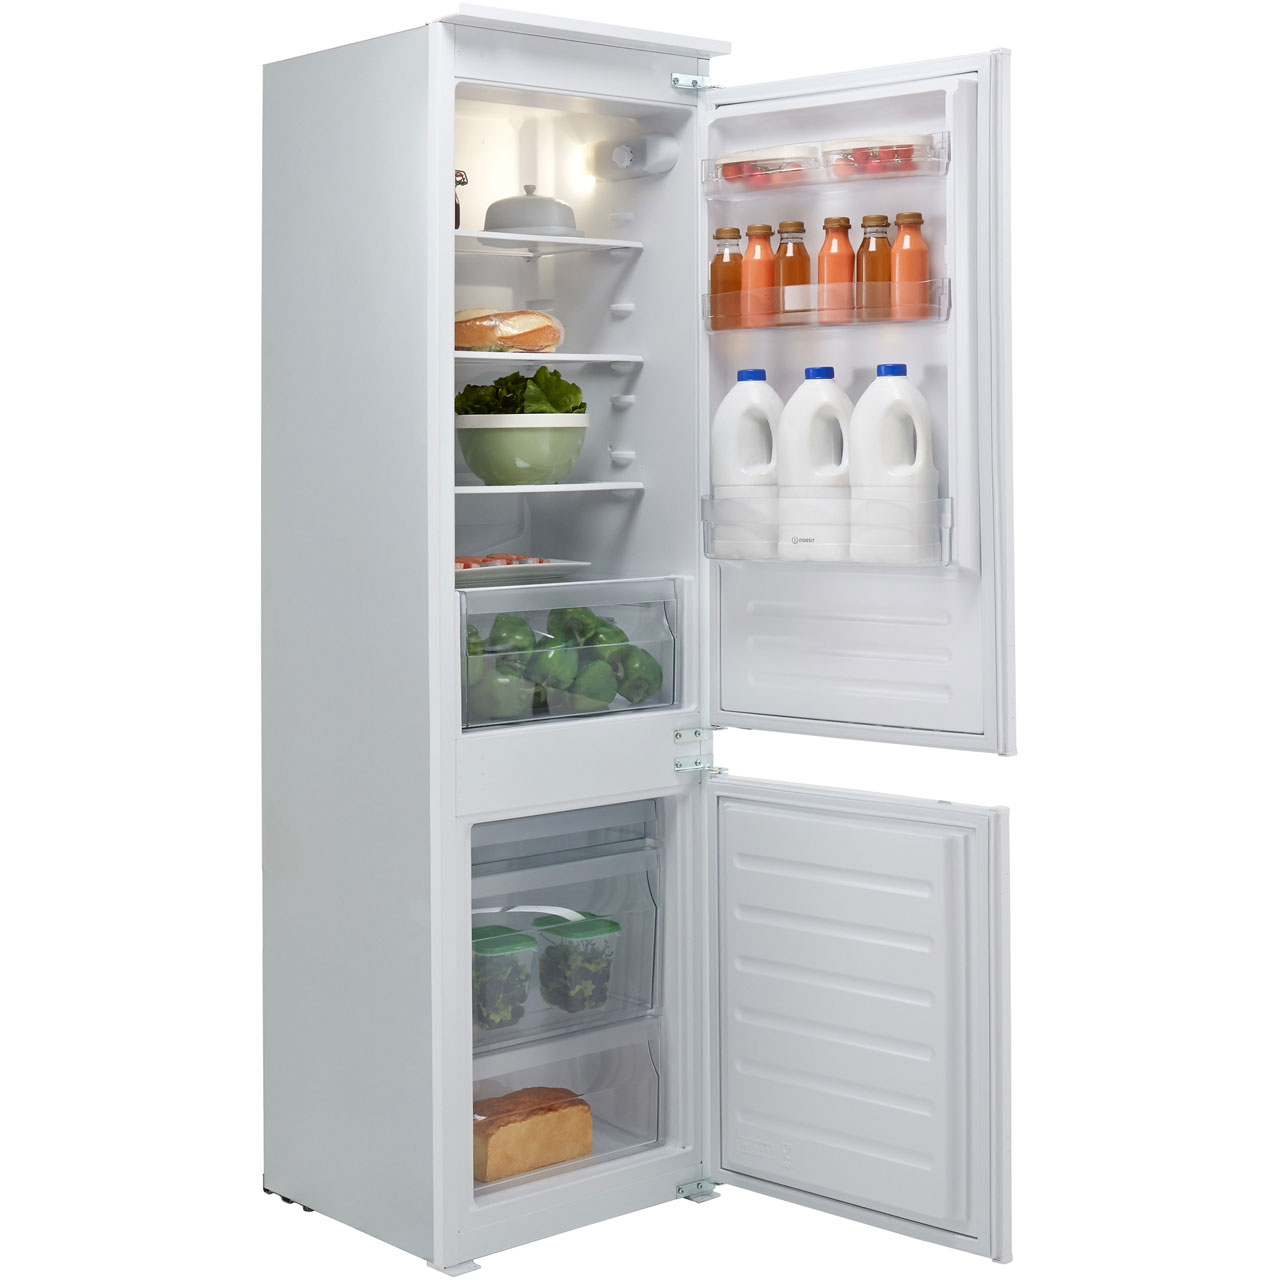 Indesit IB7030A1D 1 Integrated 70/30 Fridge Freezer with Sliding Door  Fixing Kit - White - A+ Rated